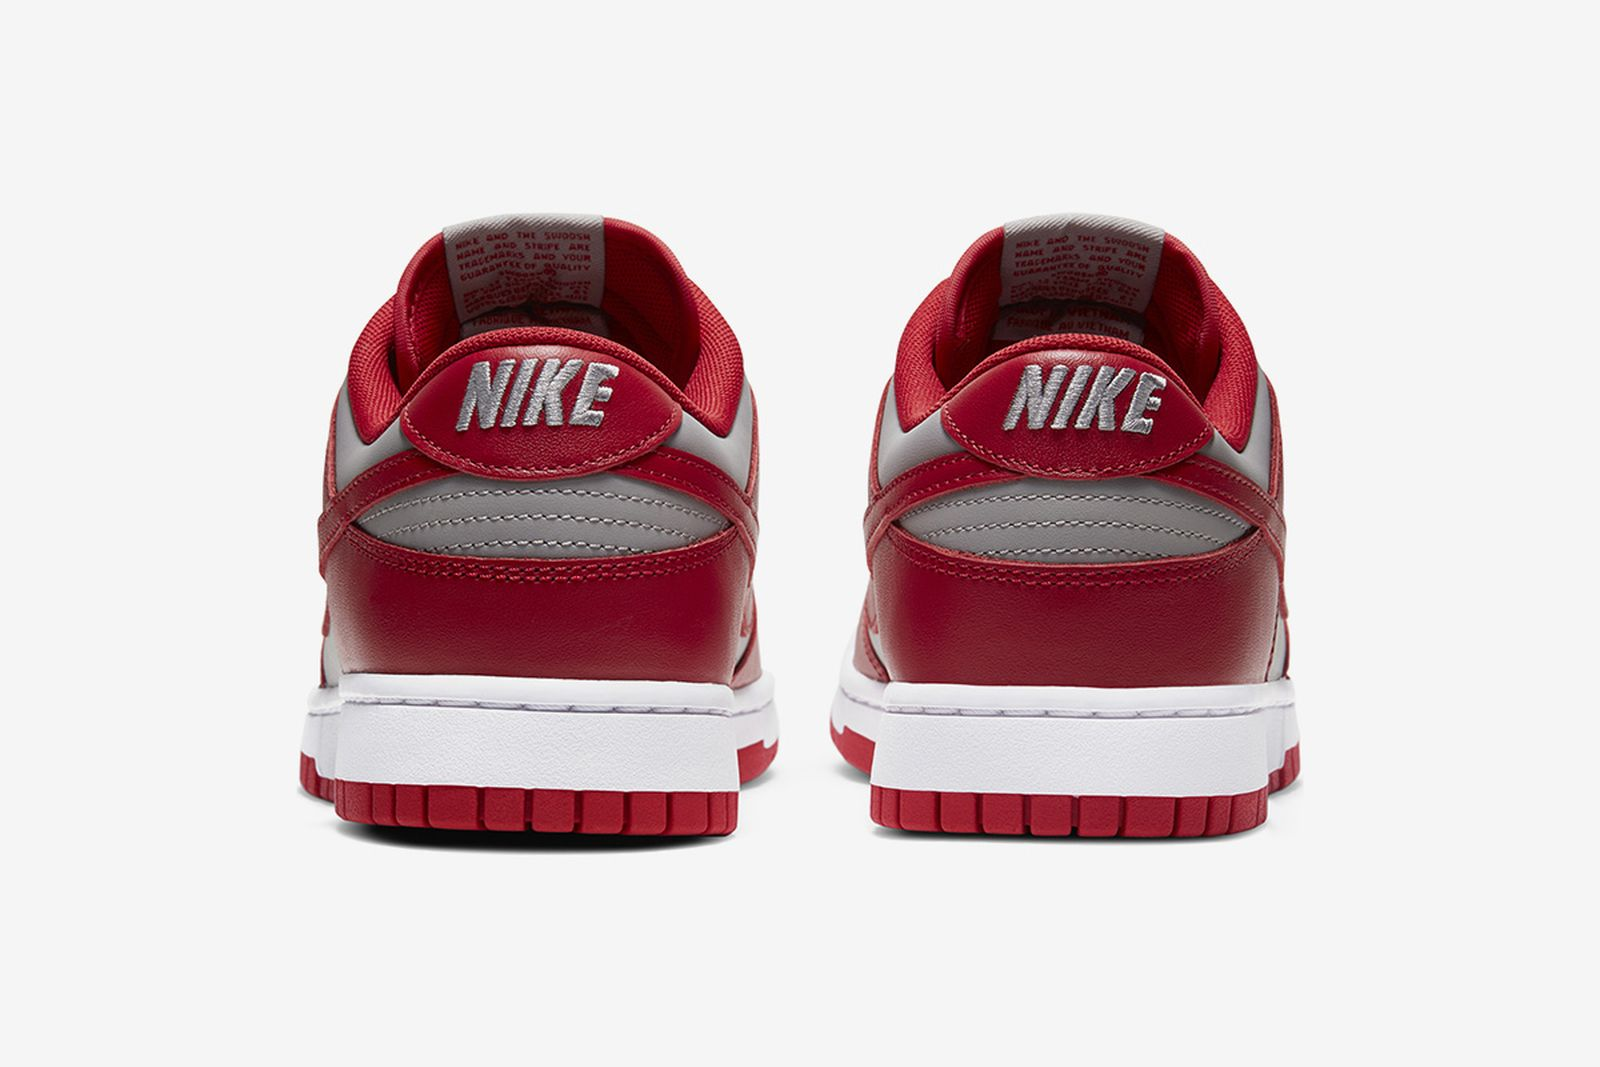 nike-dunk-spring-2021-release-date-price-1-10